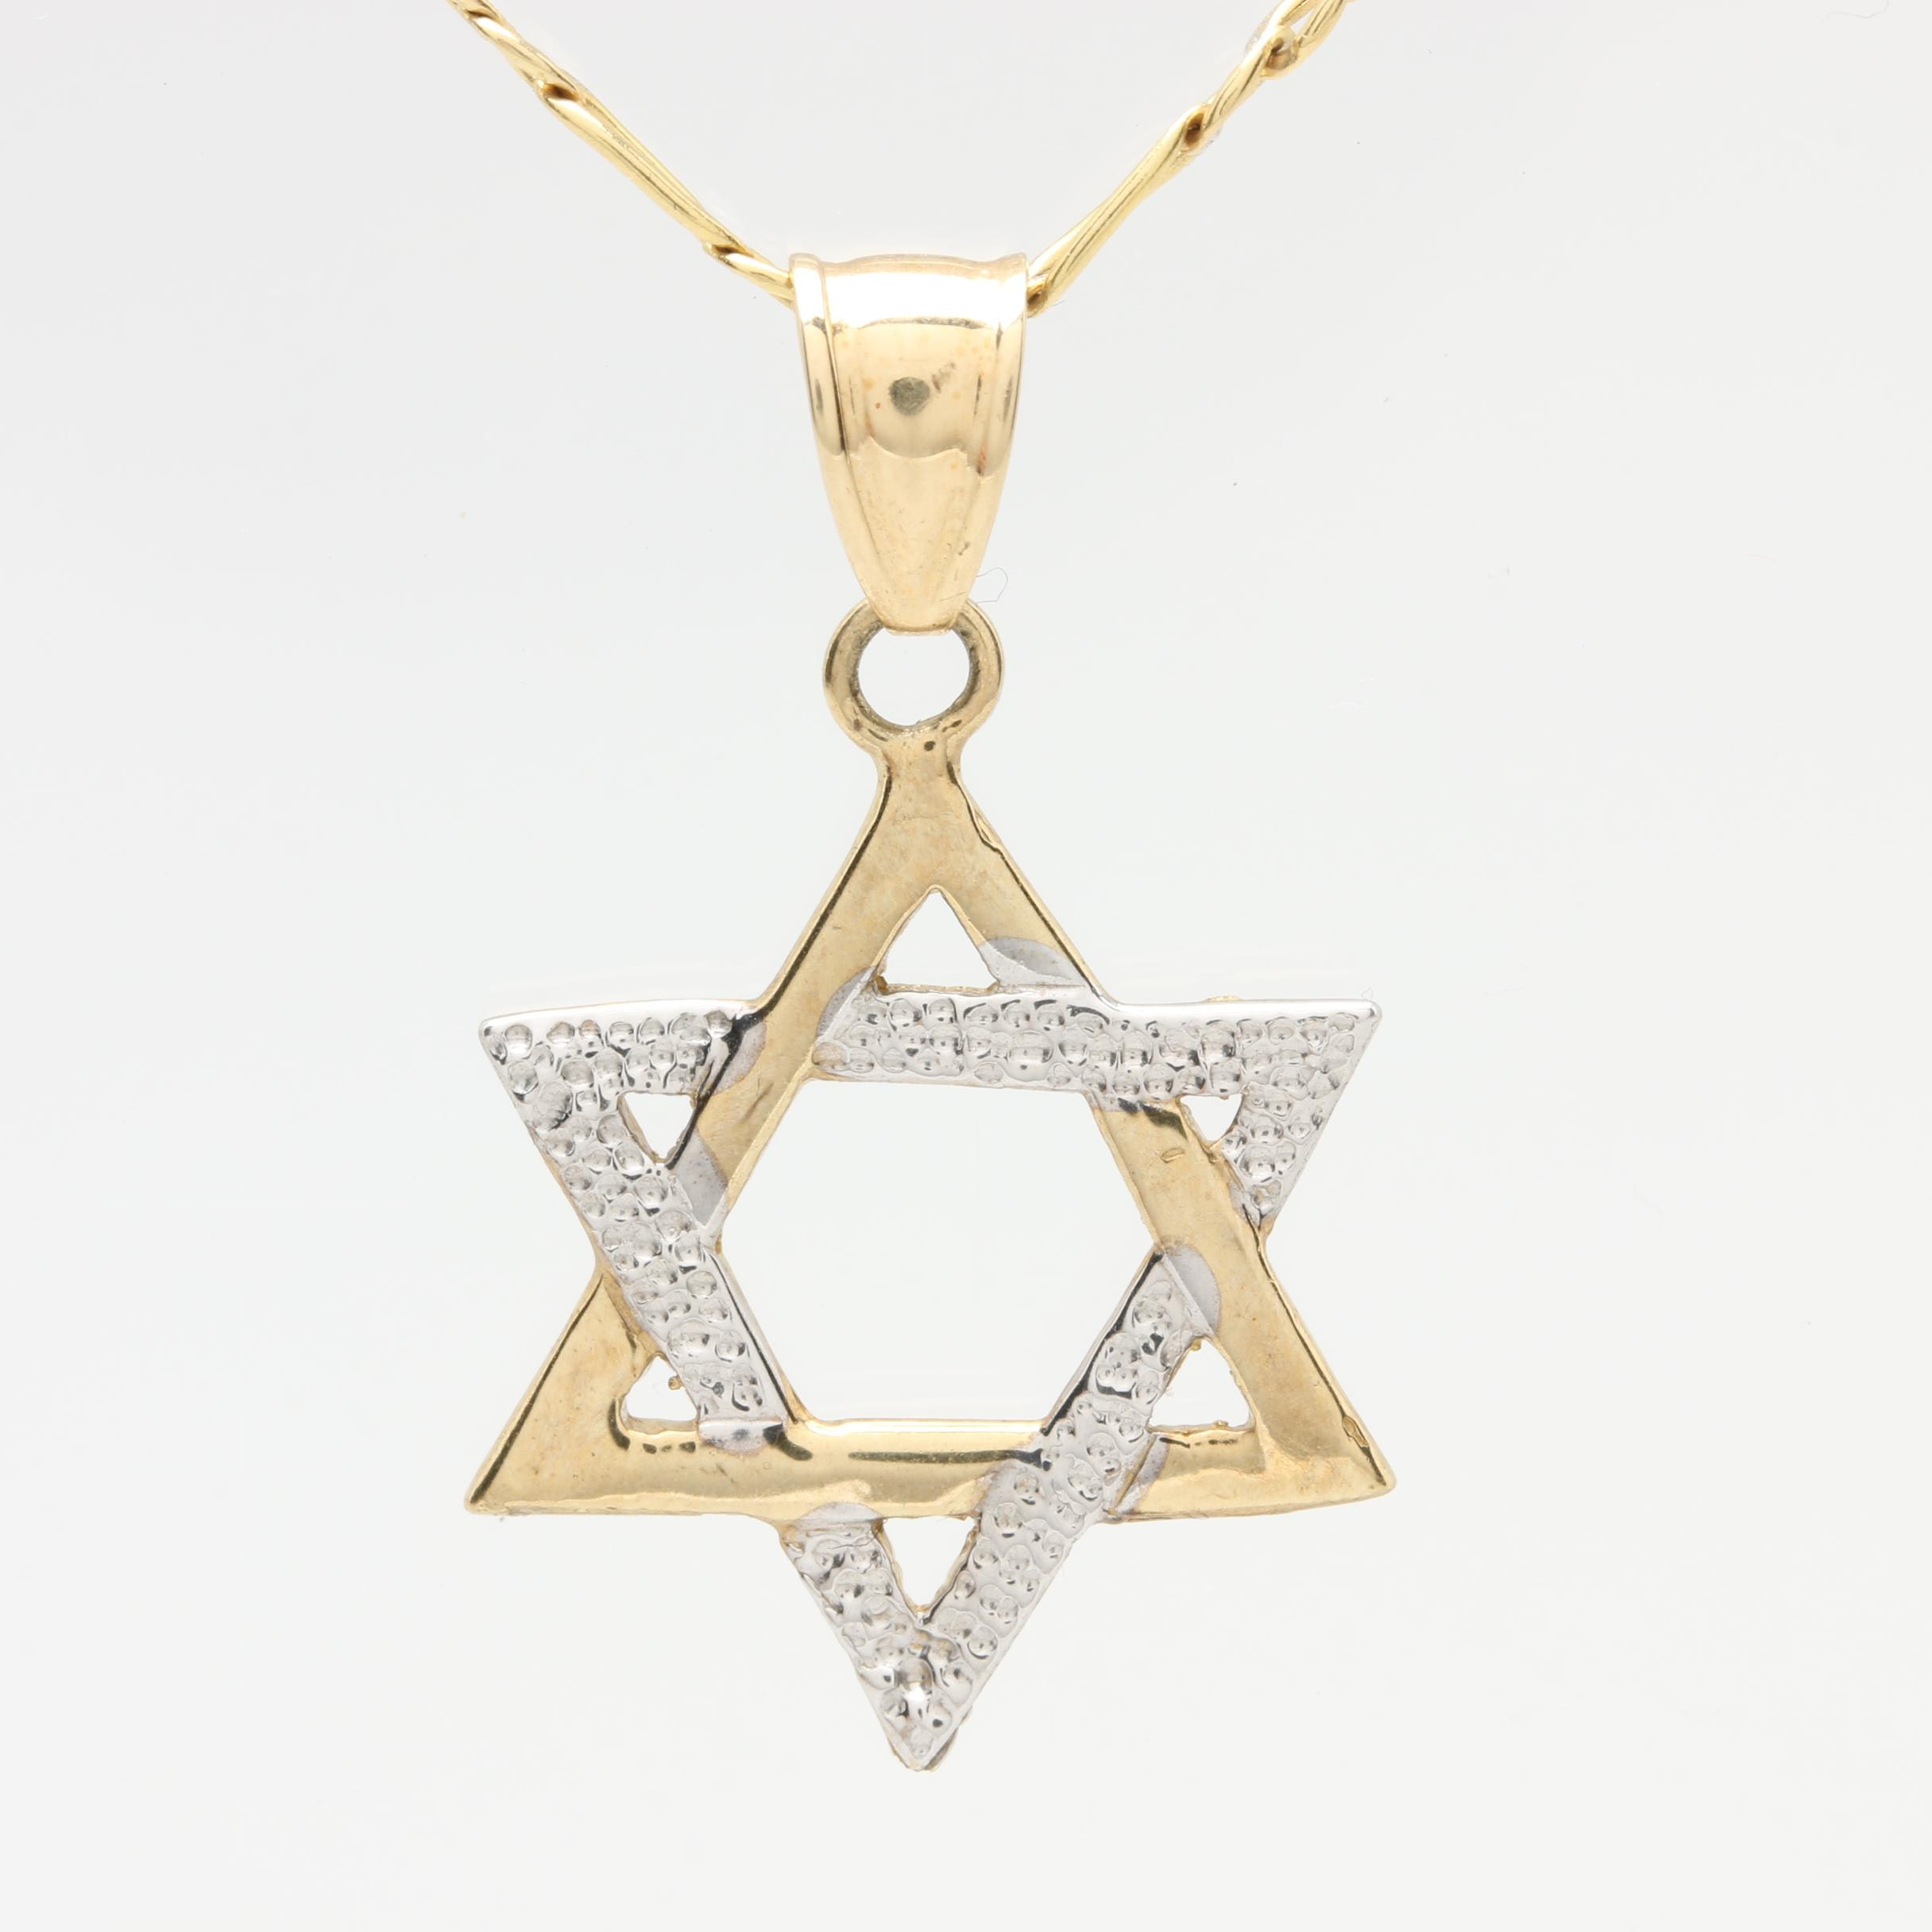 10K Yellow Gold Star of David Necklace with White Gold Accents